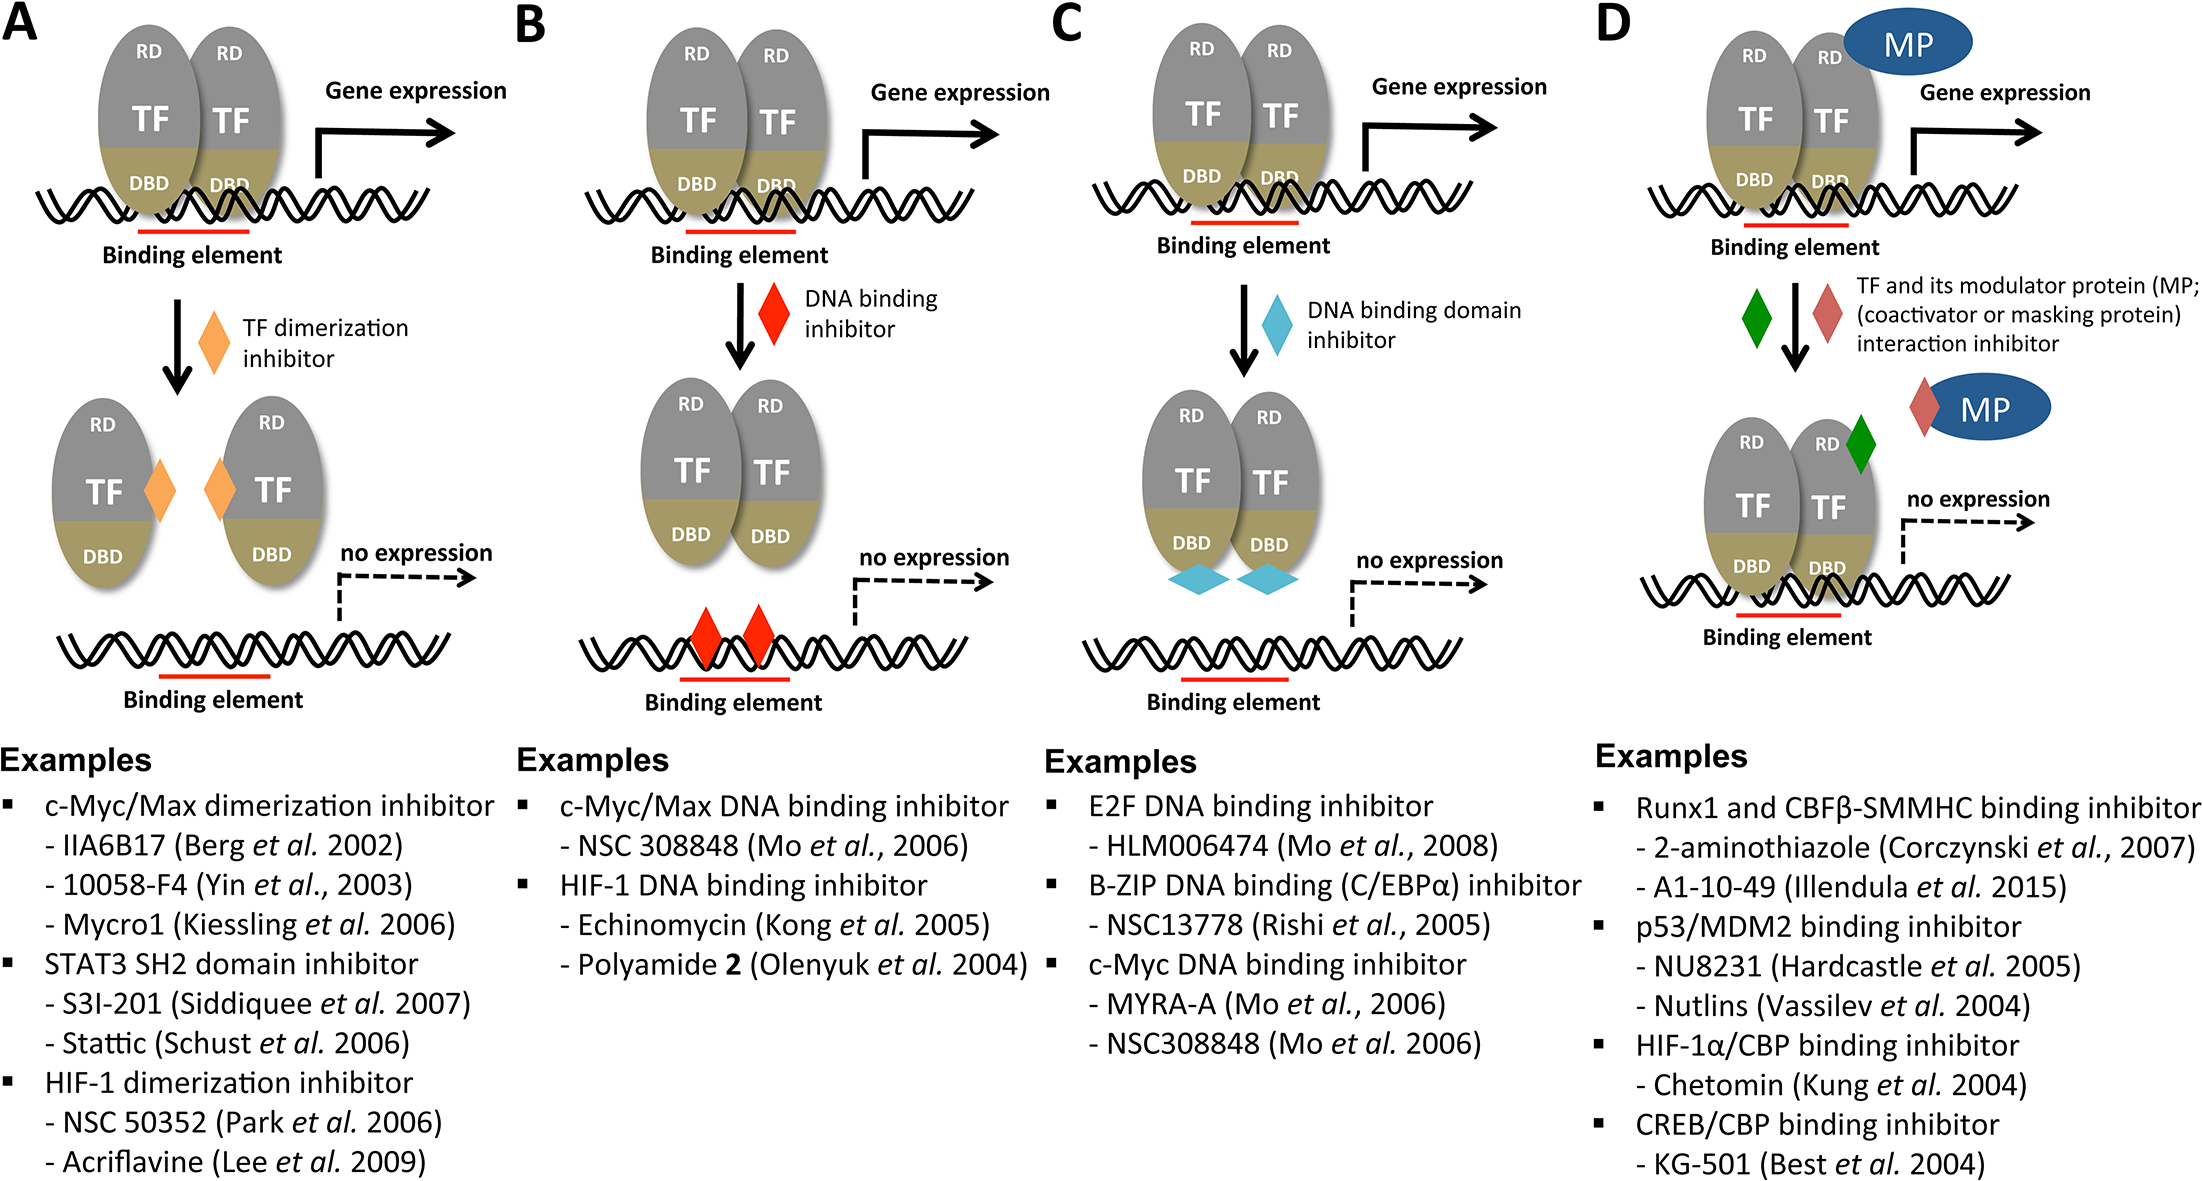 Potential mechanisms for the chemical modulation of transcription factors.